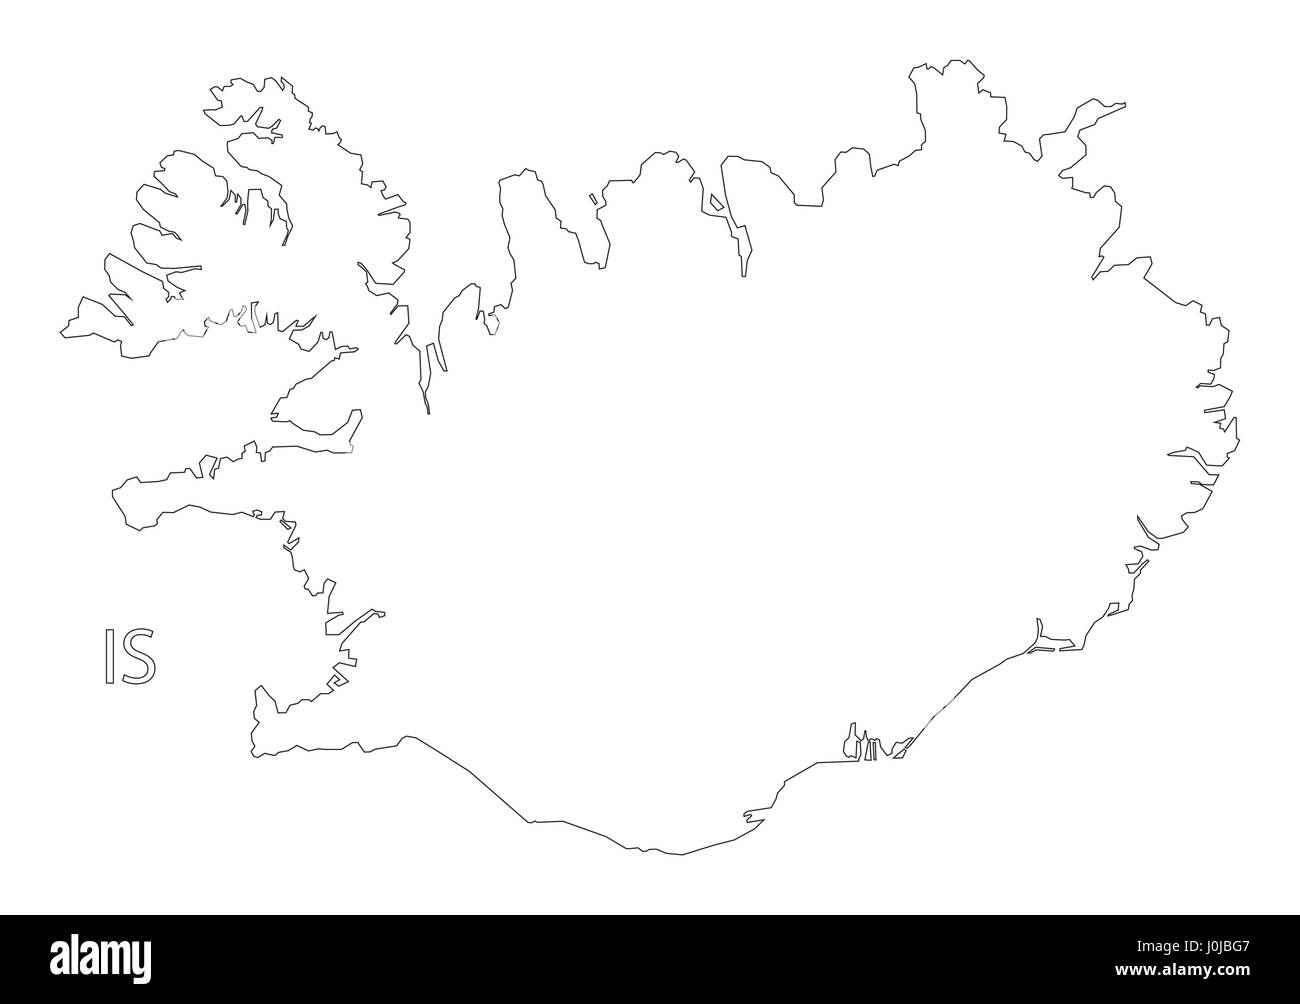 Image of: Iceland Outline Silhouette Map Illustration Stock Vector Image Art Alamy